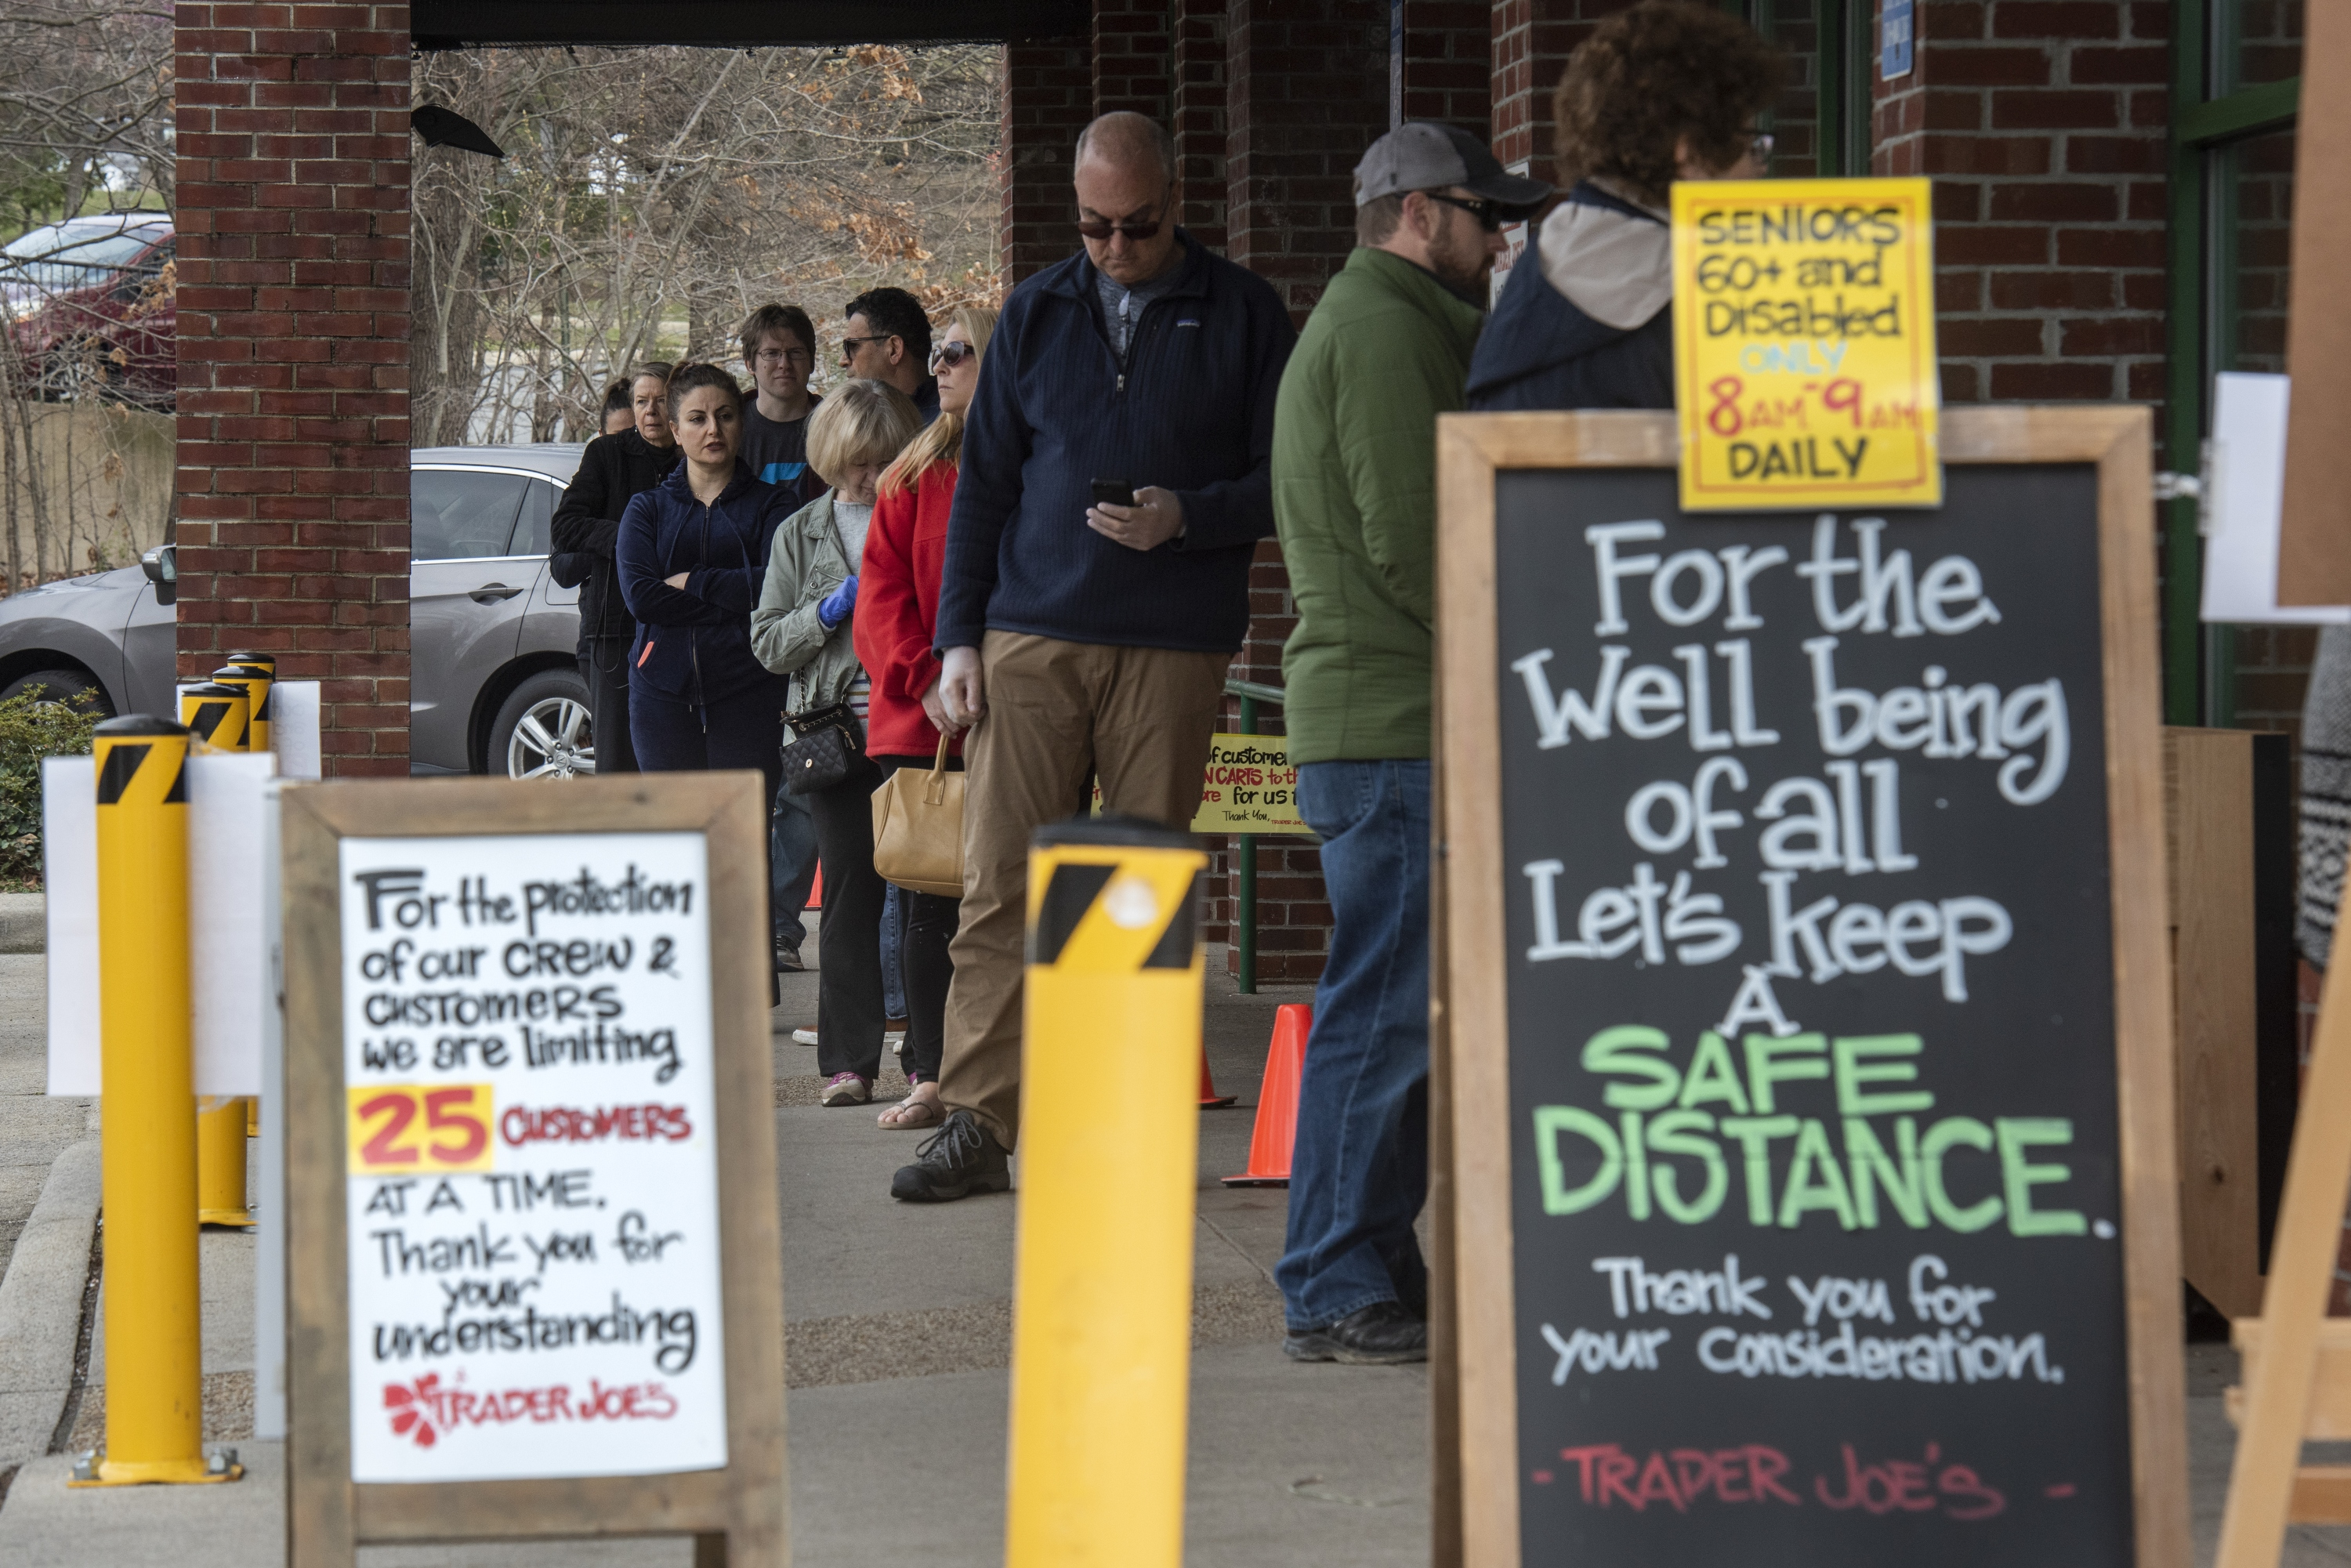 A sign reminds people to observe social distancing rules as they wait to enter a grocery store in Reston, Virginia, on April 1, 2020.